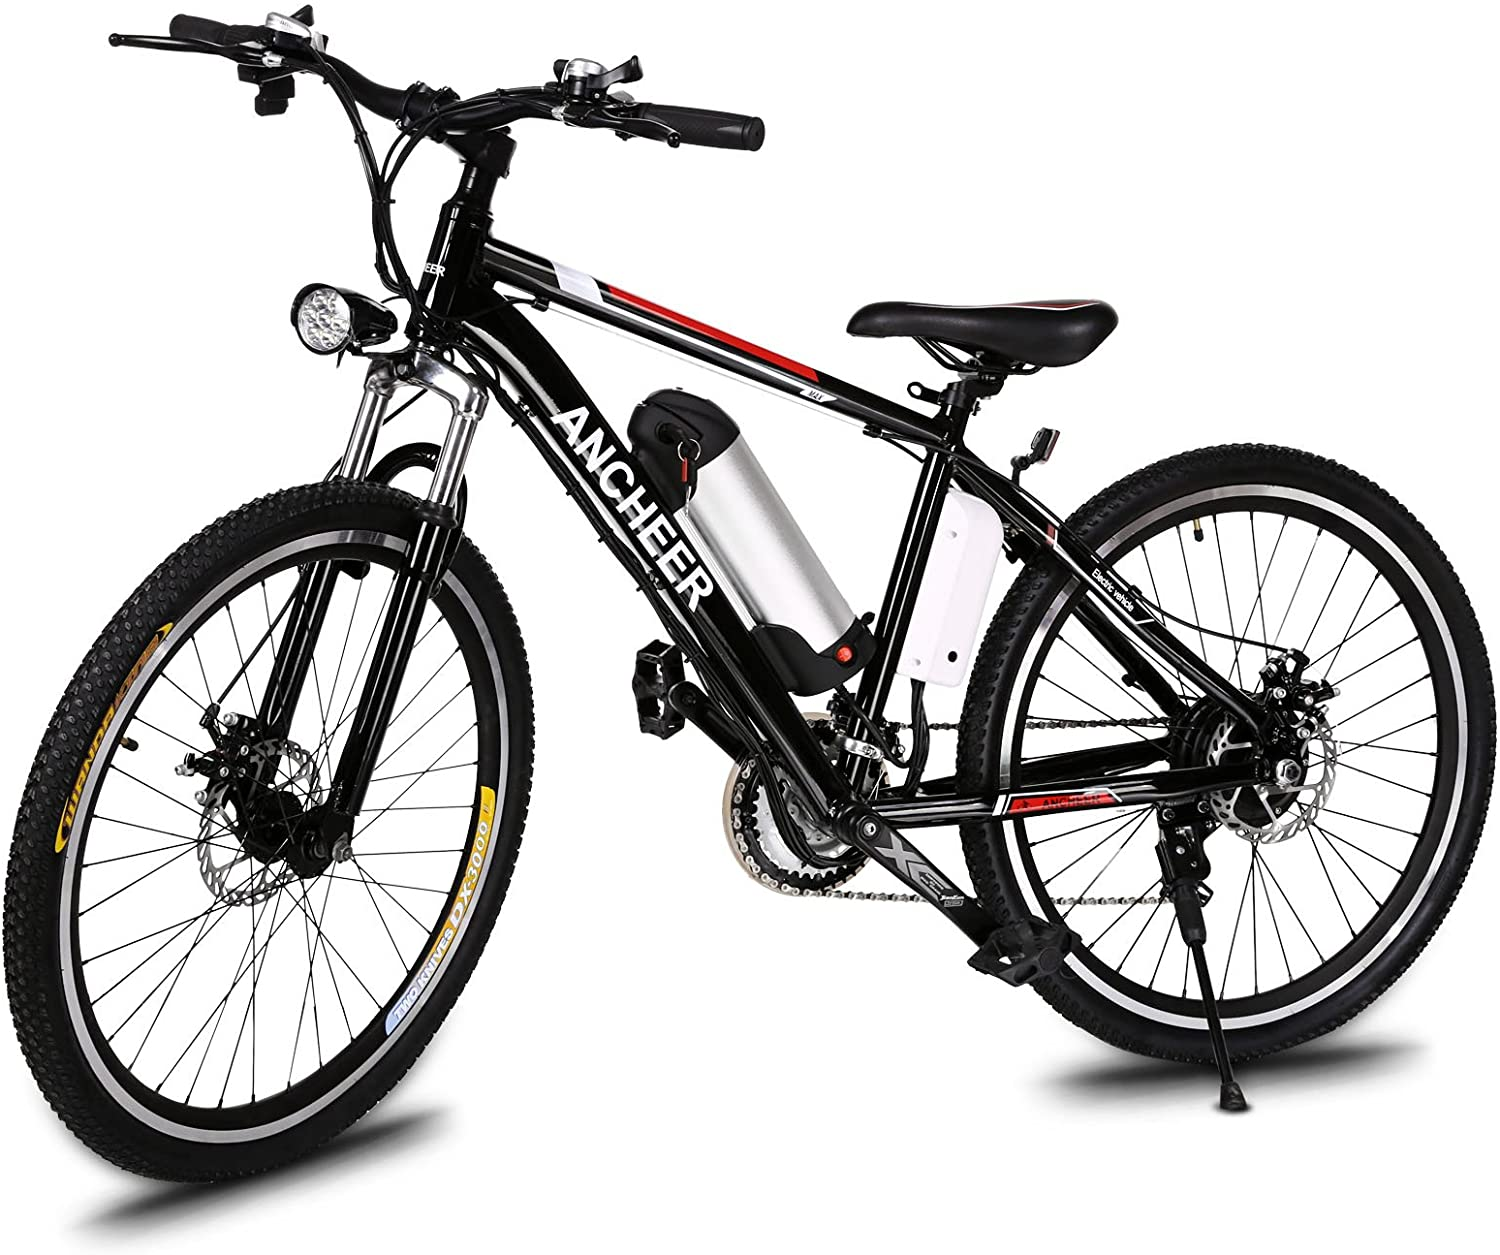 Review of ANCHEER 500W/250W Electric Bike Adult Electric Mountain Bike, 26